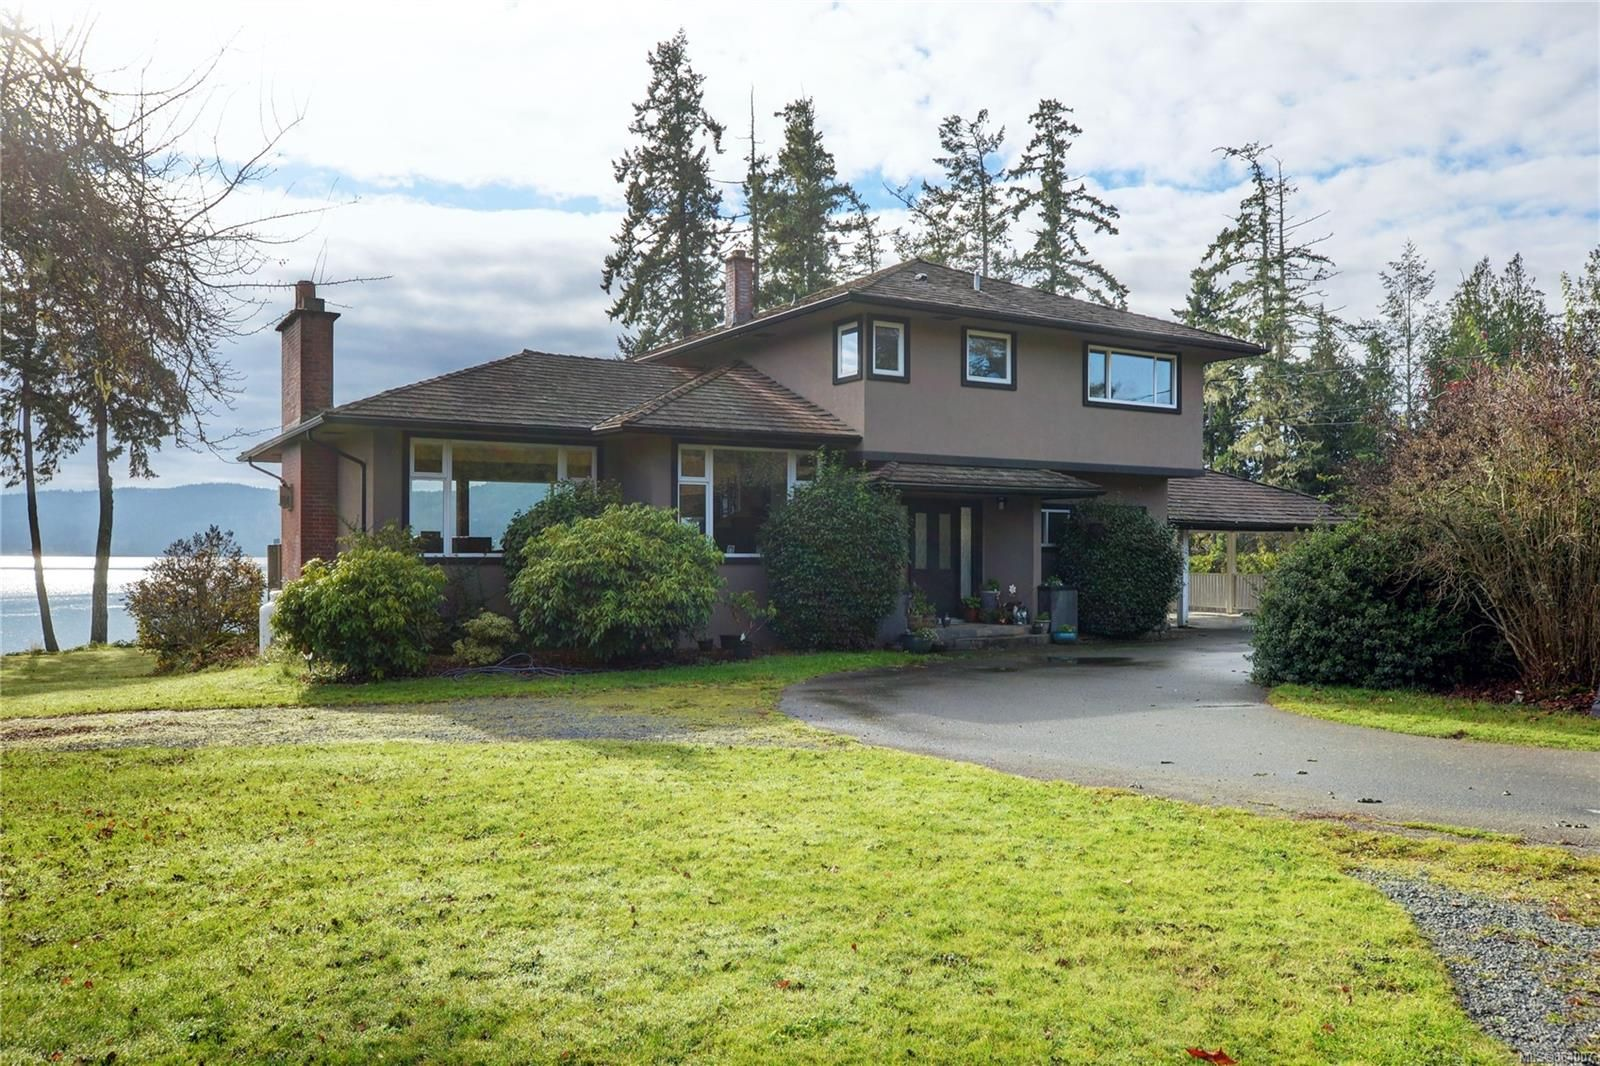 Photo 1: Photos: 5697 Sooke Rd in : Sk Saseenos House for sale (Sooke)  : MLS®# 864007